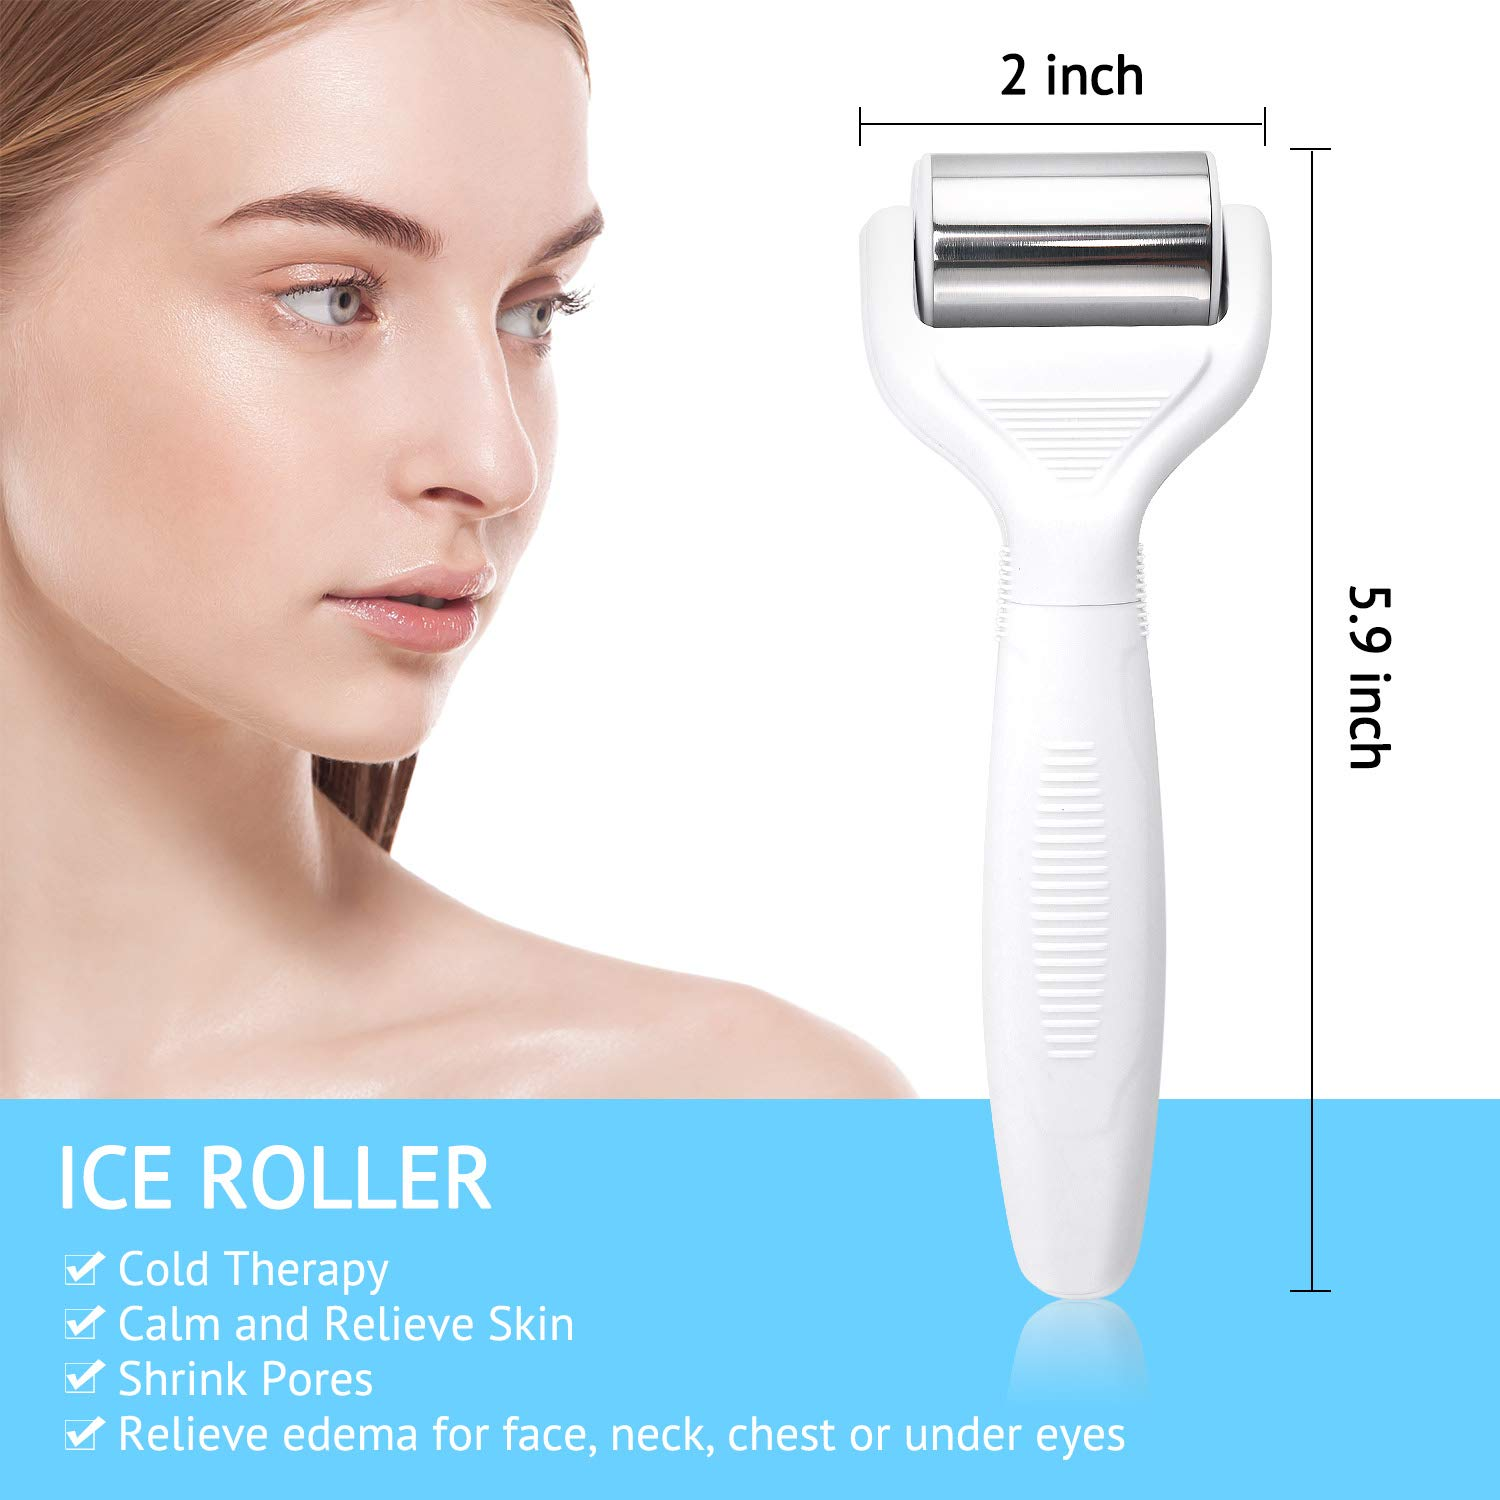 Derma Roller Ice Roller Kit .25mm Titanium Microneedles 6 in 1 Ice Roller Dermaroller for Face and Body, 12/300/ 720 Titanium Micro Needle and Ice Roller Massager Pain Relief